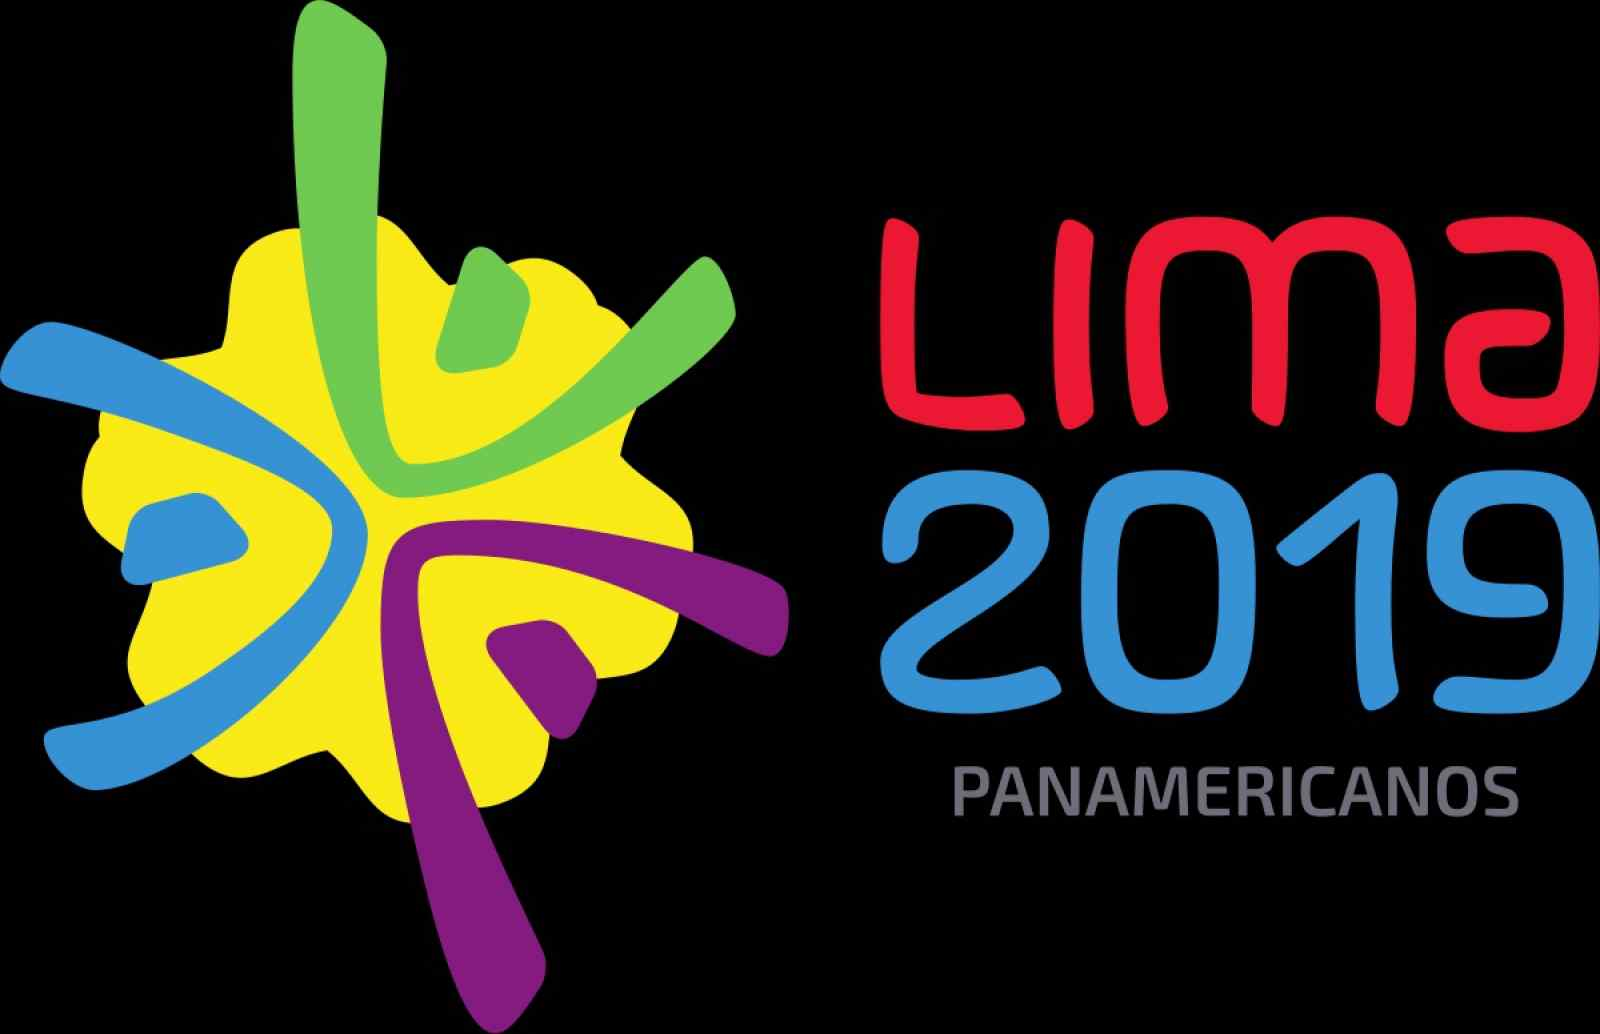 http://www.timebulletin.com/wp-content/uploads/2019/07/Pan-American-Games-2019.jpg